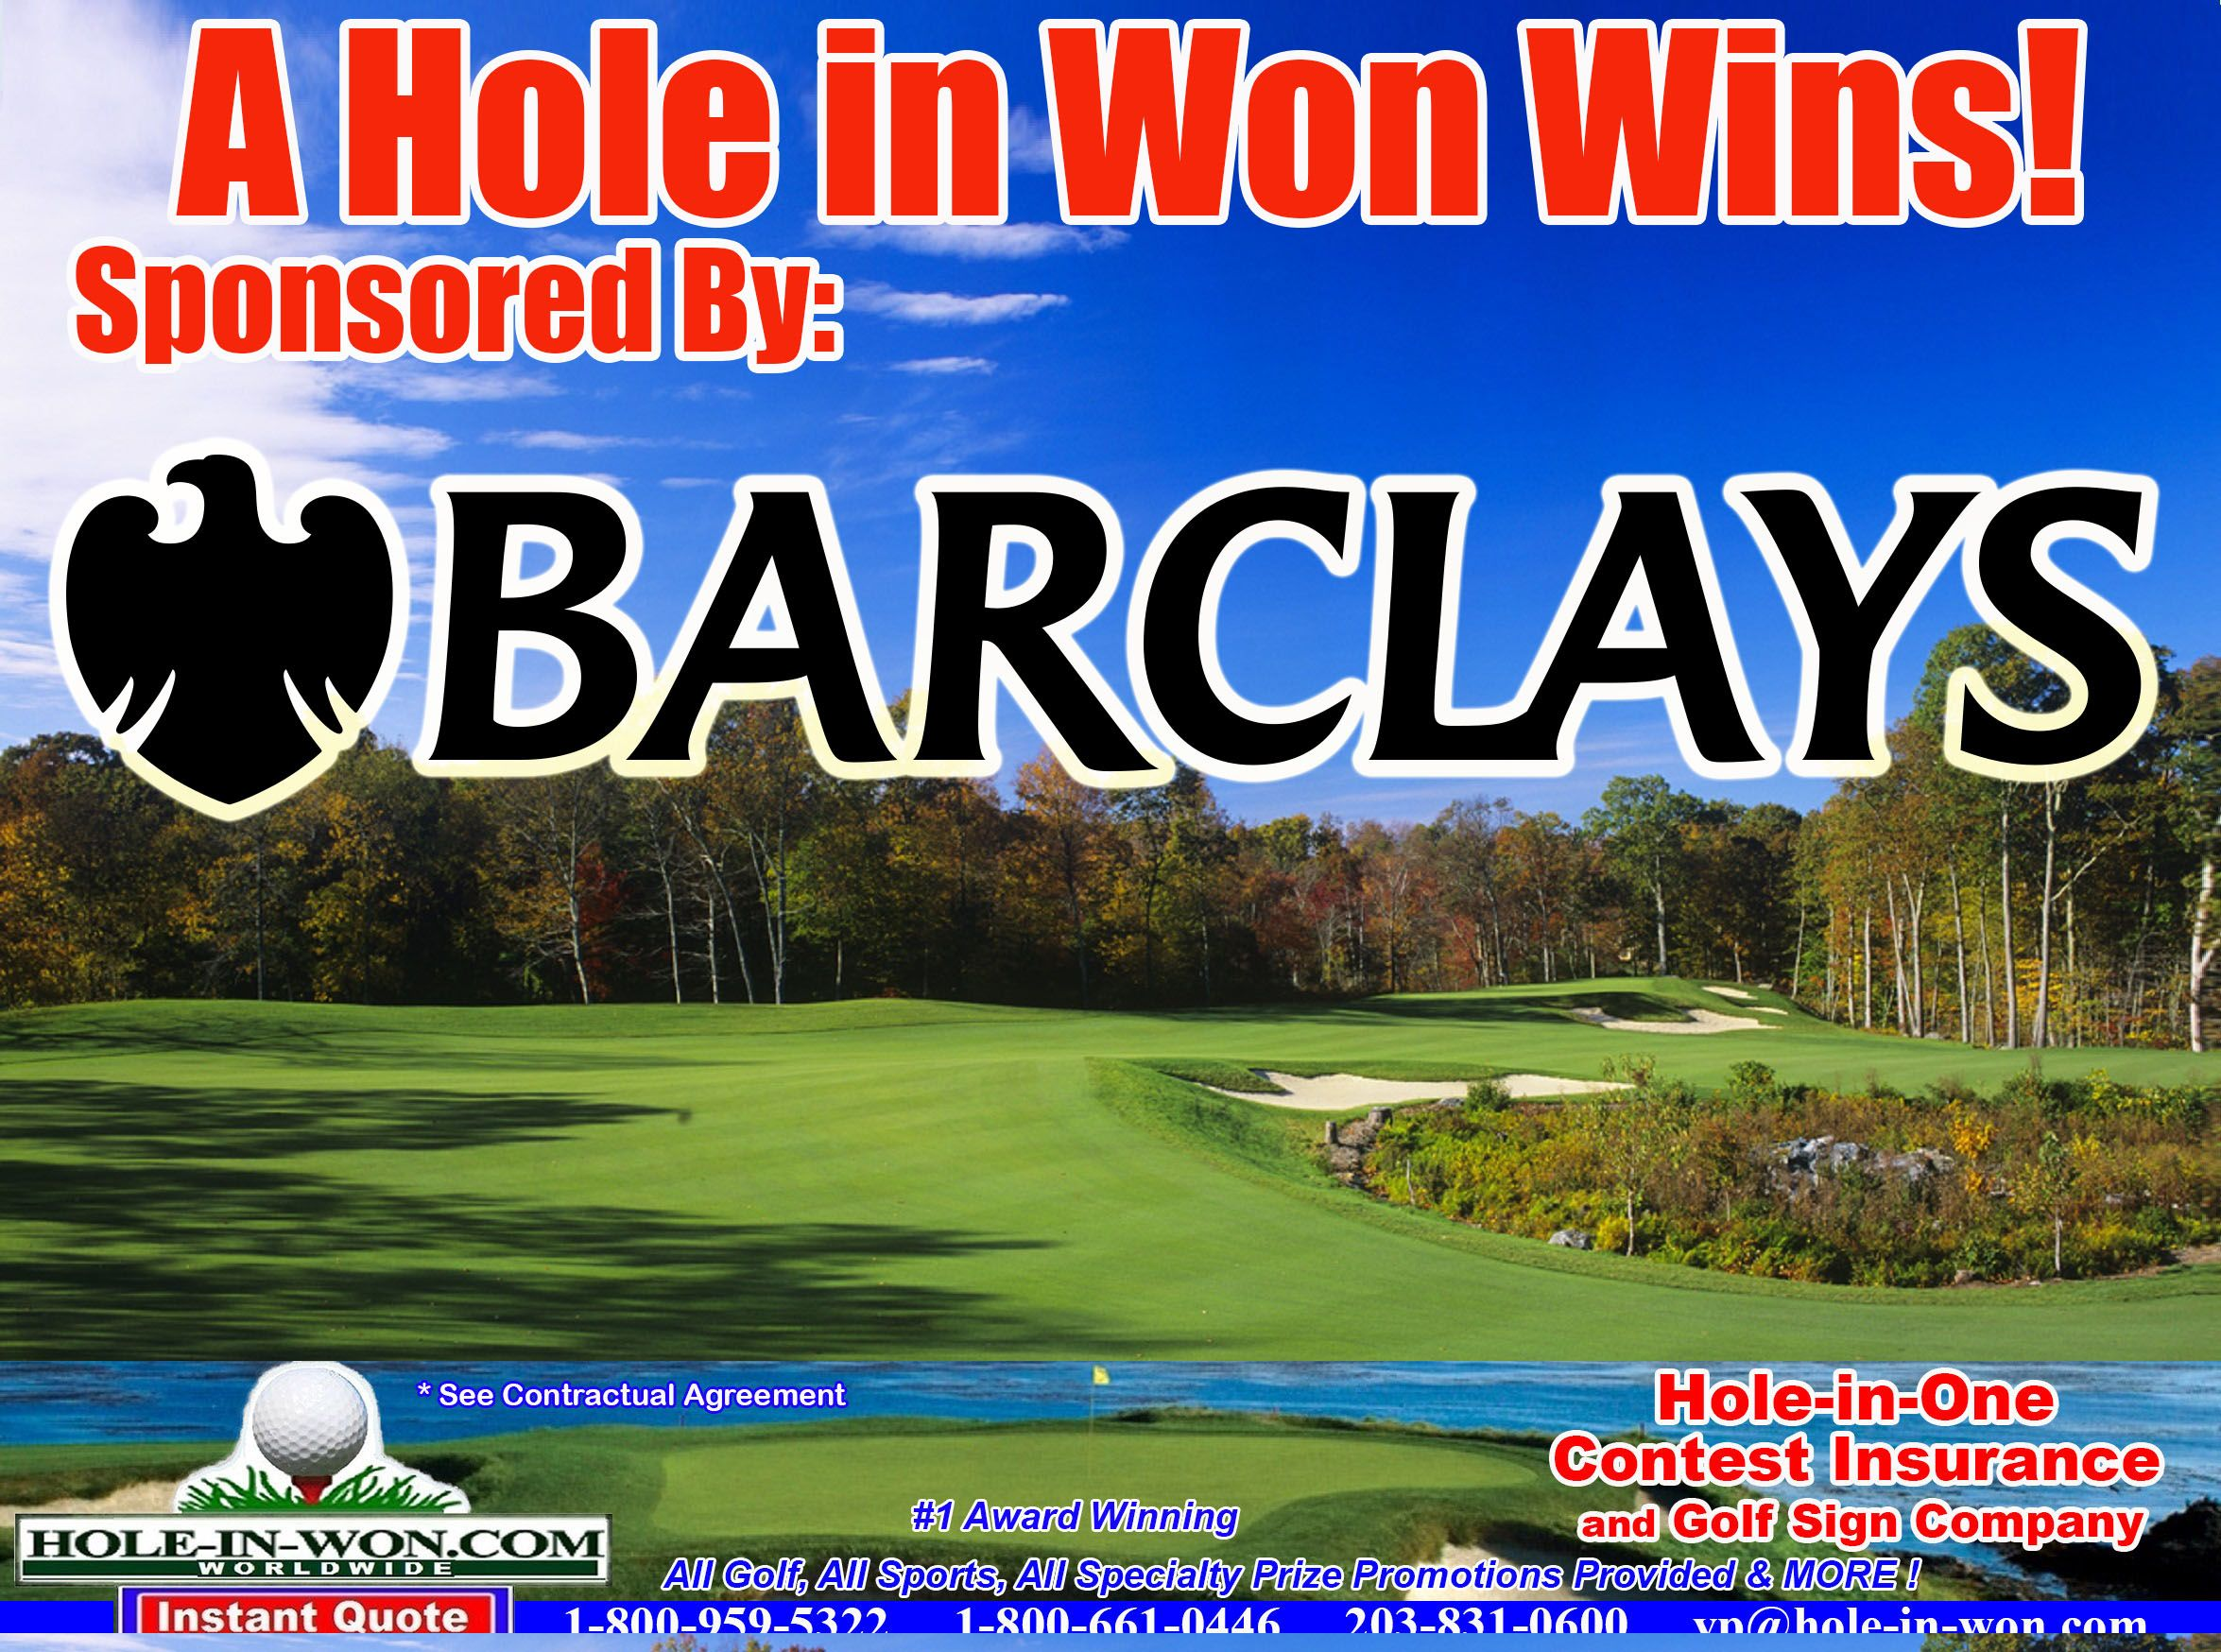 Charity Golf Day Hole In One Insurance Putting Contest Ideas For